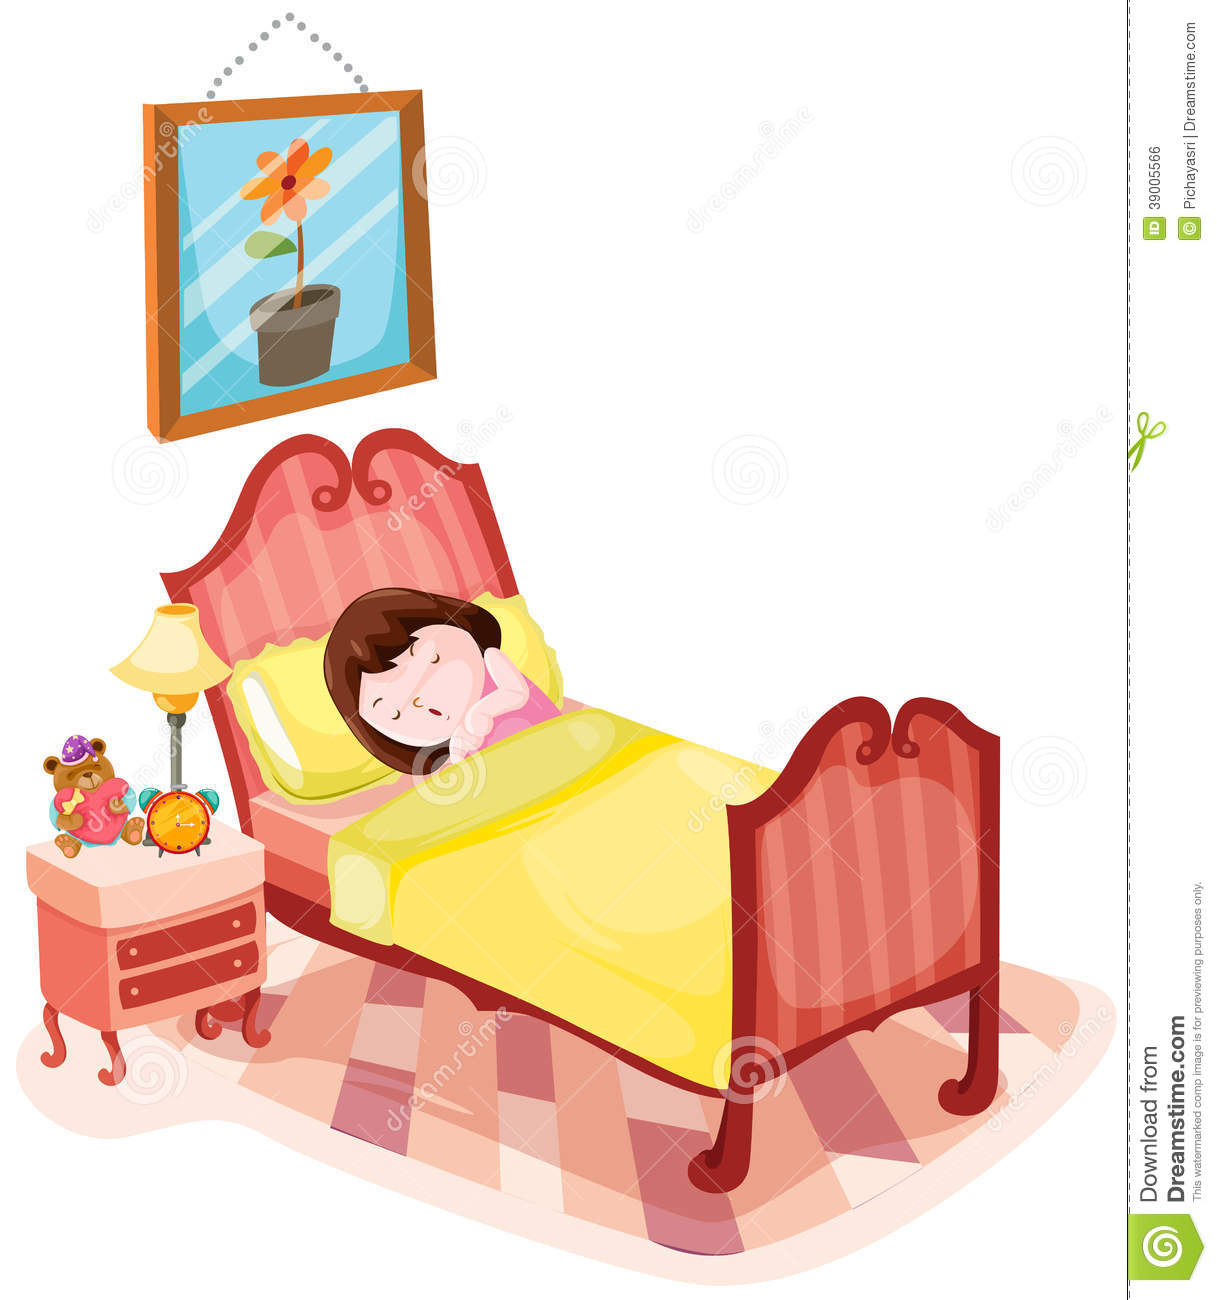 Cute girl sleeping in bed stock vector. Illustration of ...